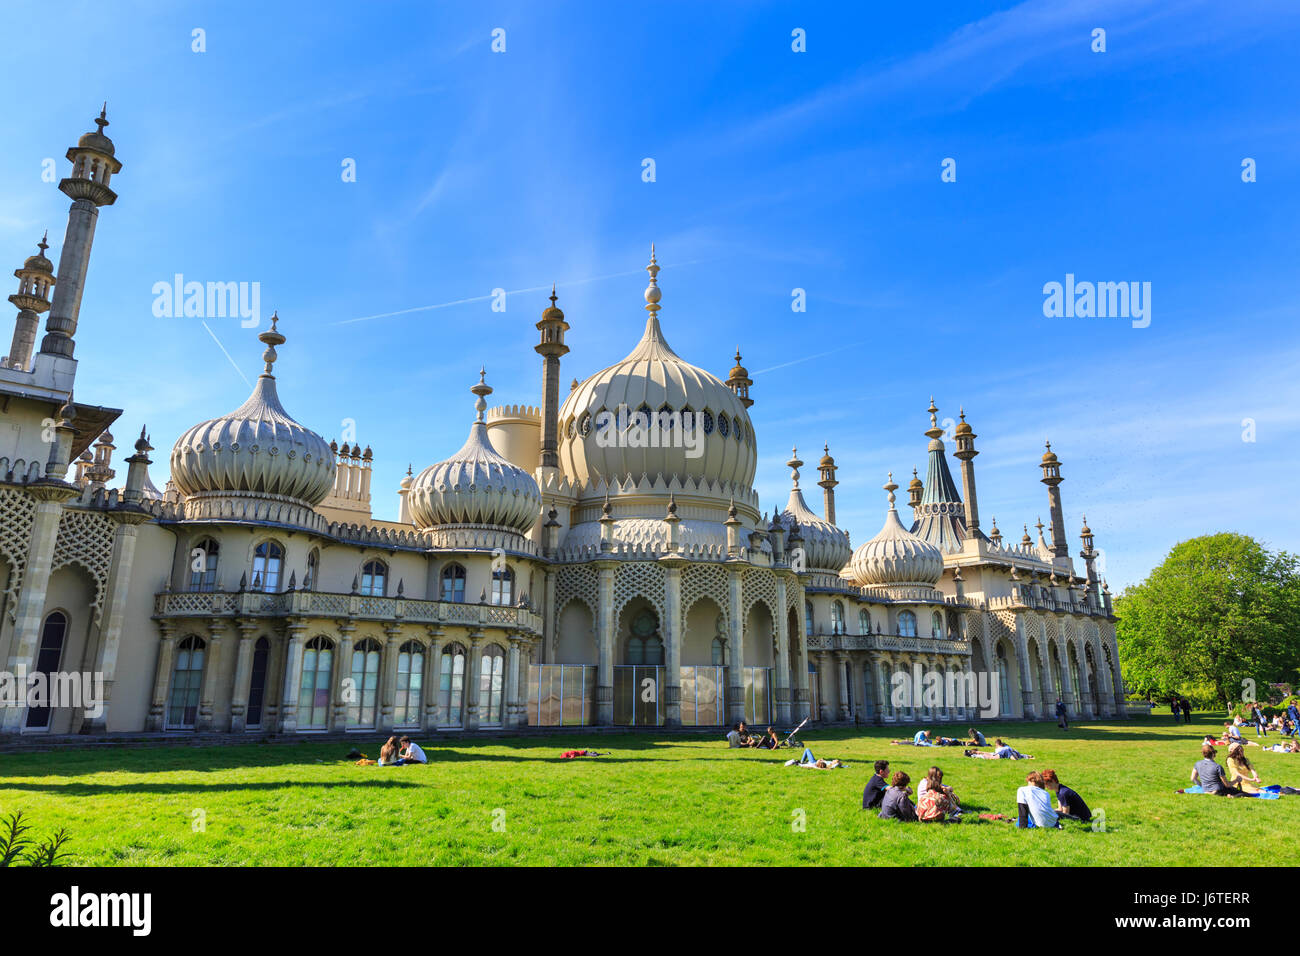 Brighton, UK, 21st May 2017. People enjoy a sunny and warm day on the lawns around Brighton's Royal Paviilon - Stock Image